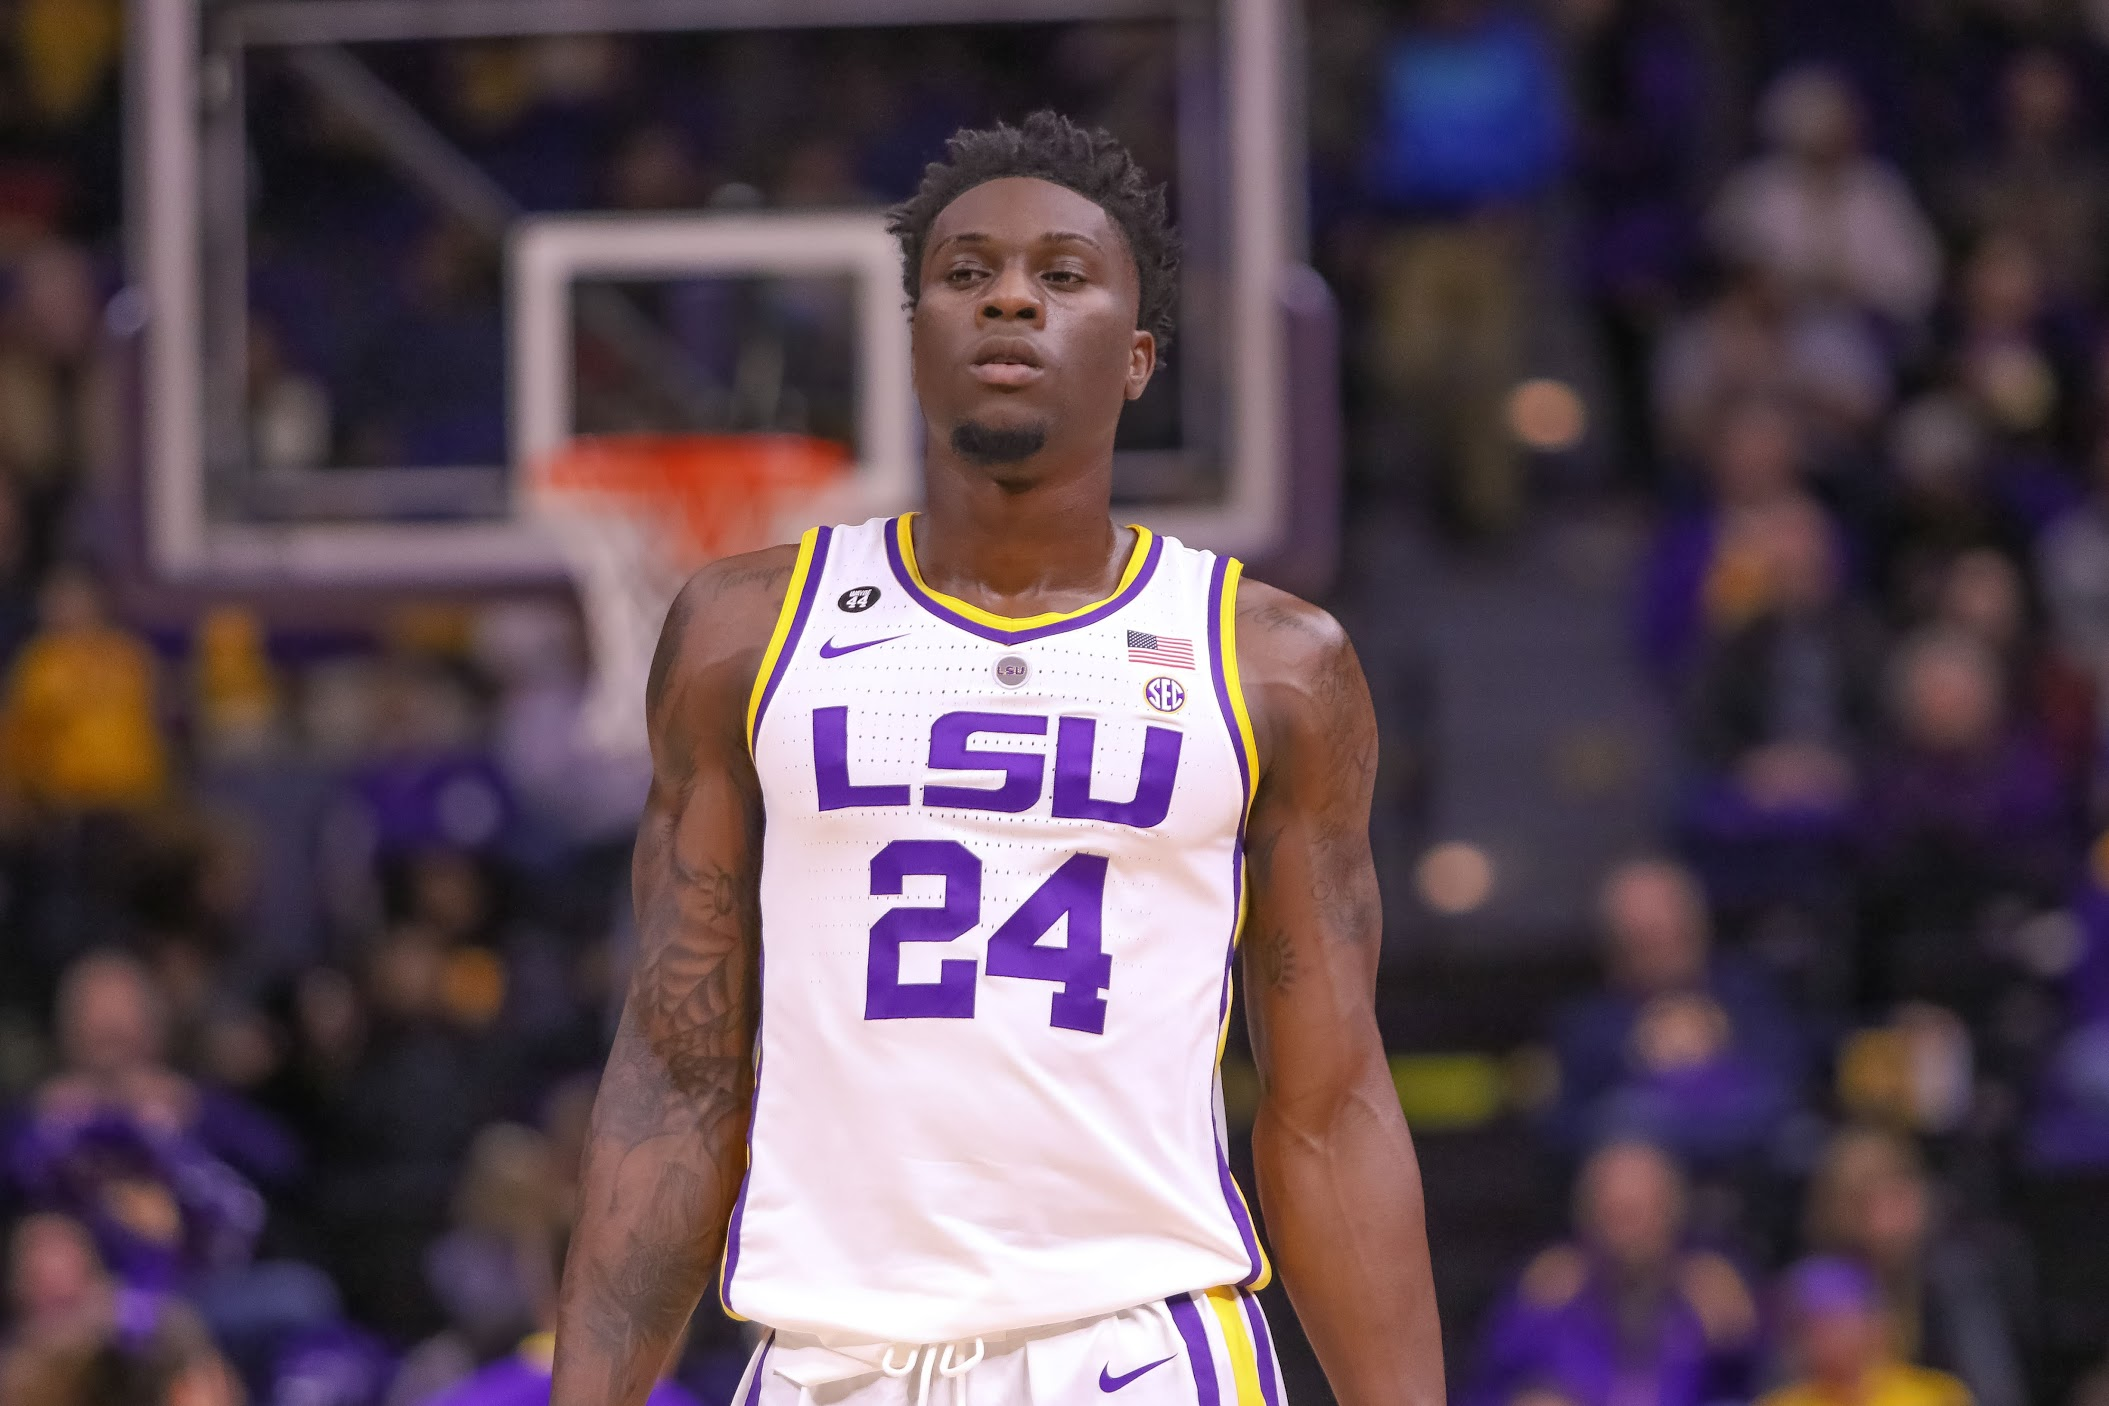 Pregame Thread: No. 19 LSU vs. No. 5 Kentucky